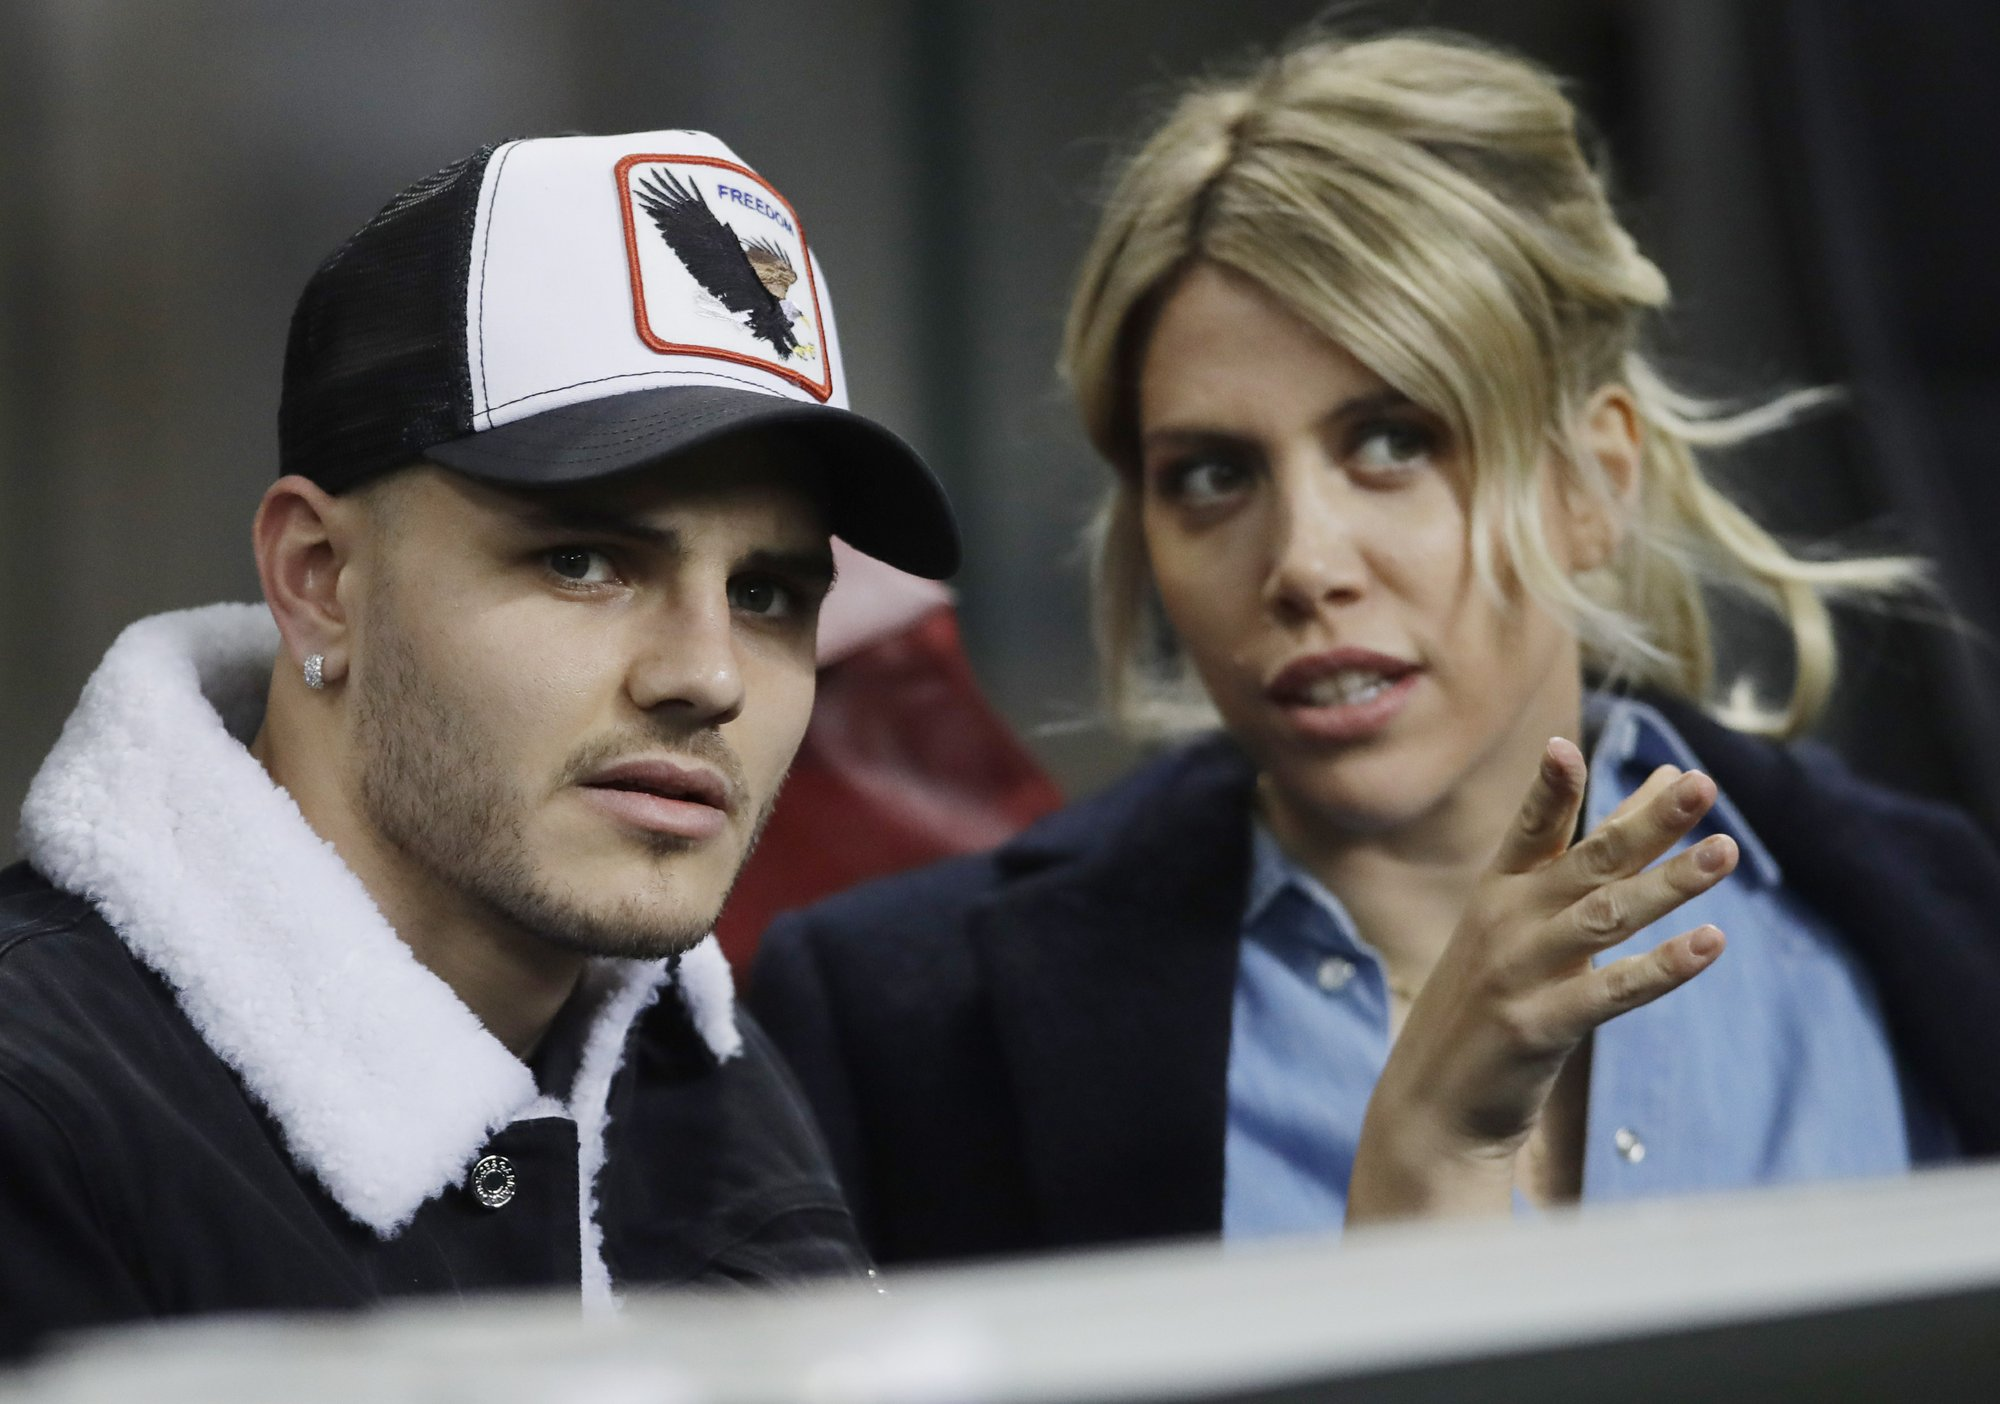 Icardi ends 6-week exile at Inter as he resumes training